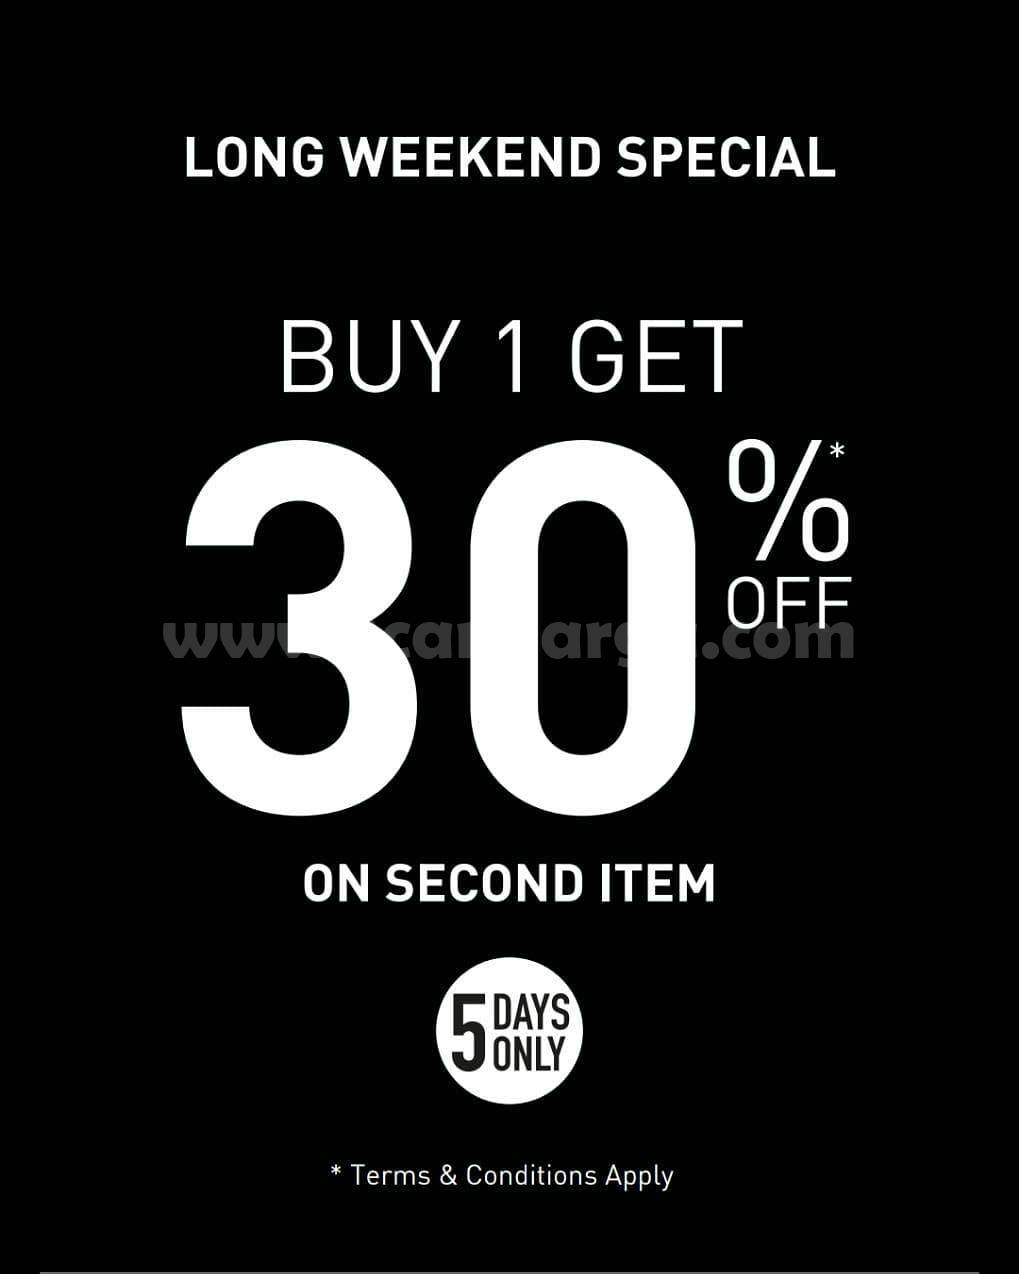 Promo Puma Special Long Weekend – Buy 1 Get 30% Off